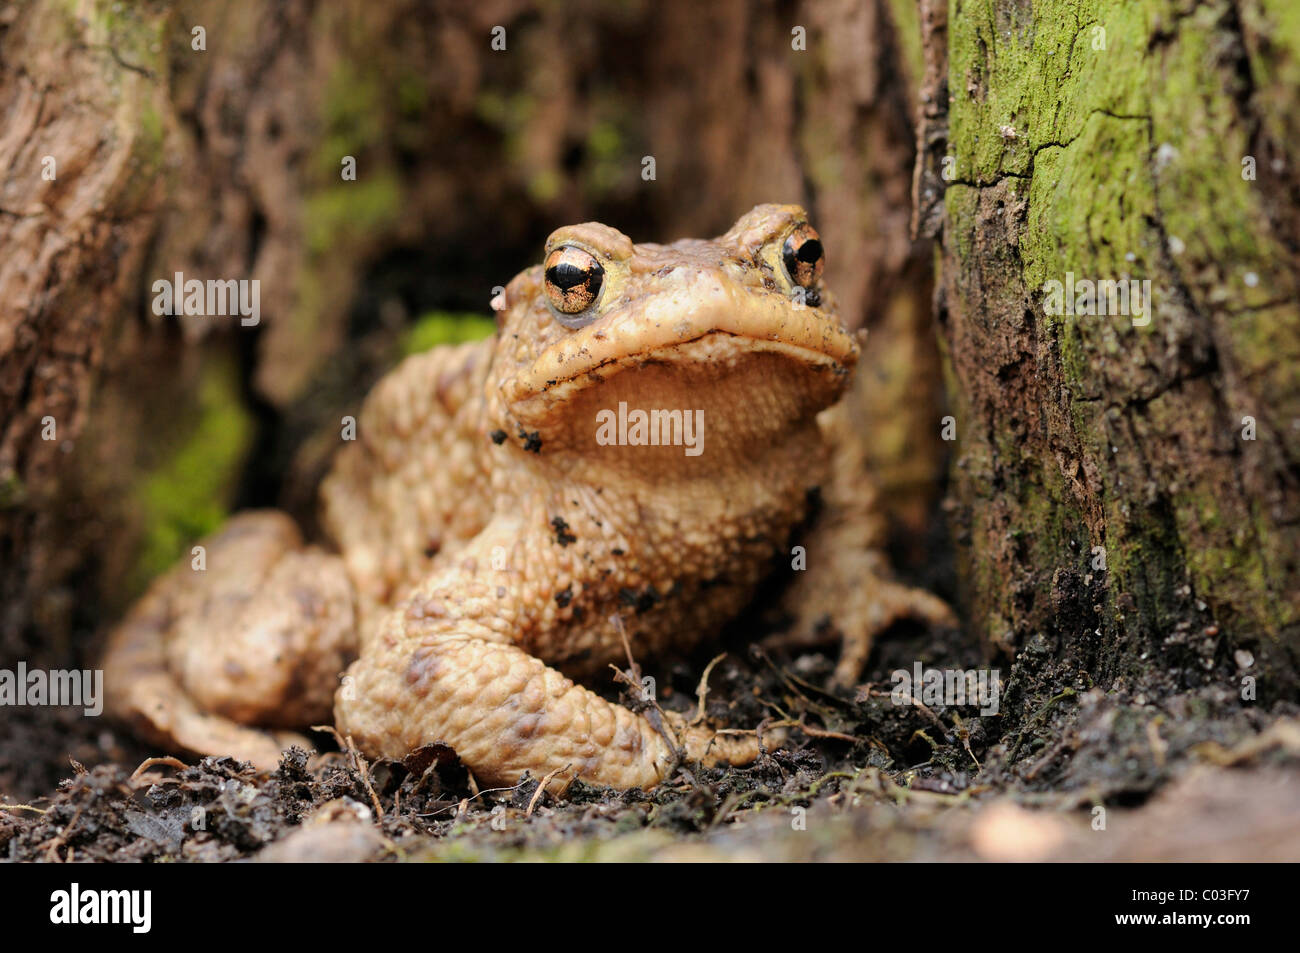 Common toad (Bufo bufo) on the forest floor in a lowland forest near Leipzig, Saxony, Germany, Europe Stock Photo